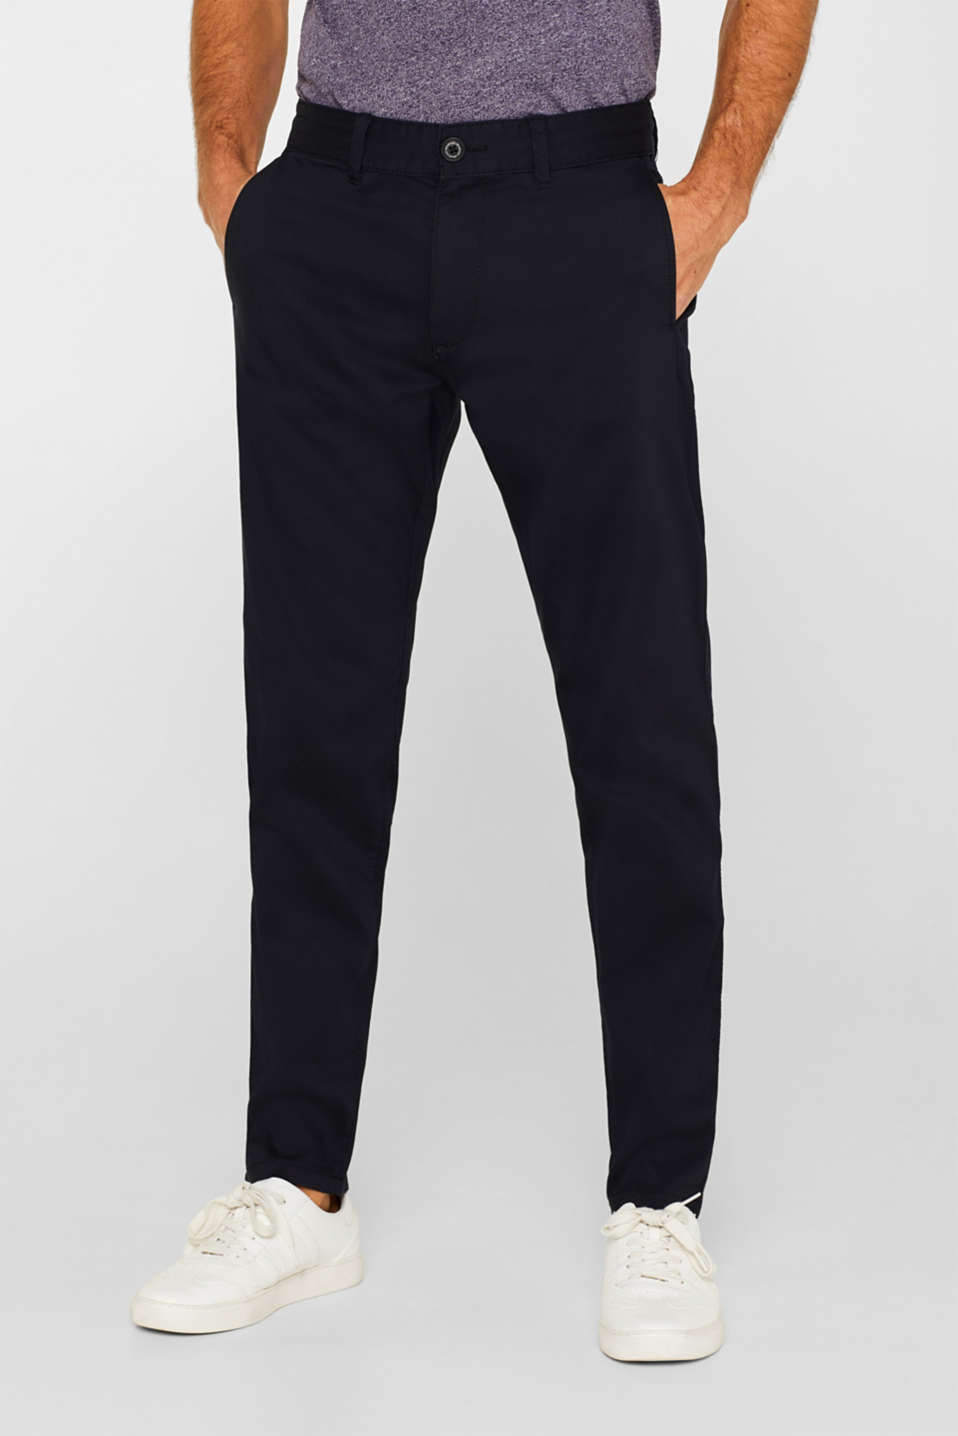 edc - Stretch trousers with a drawstring waistband